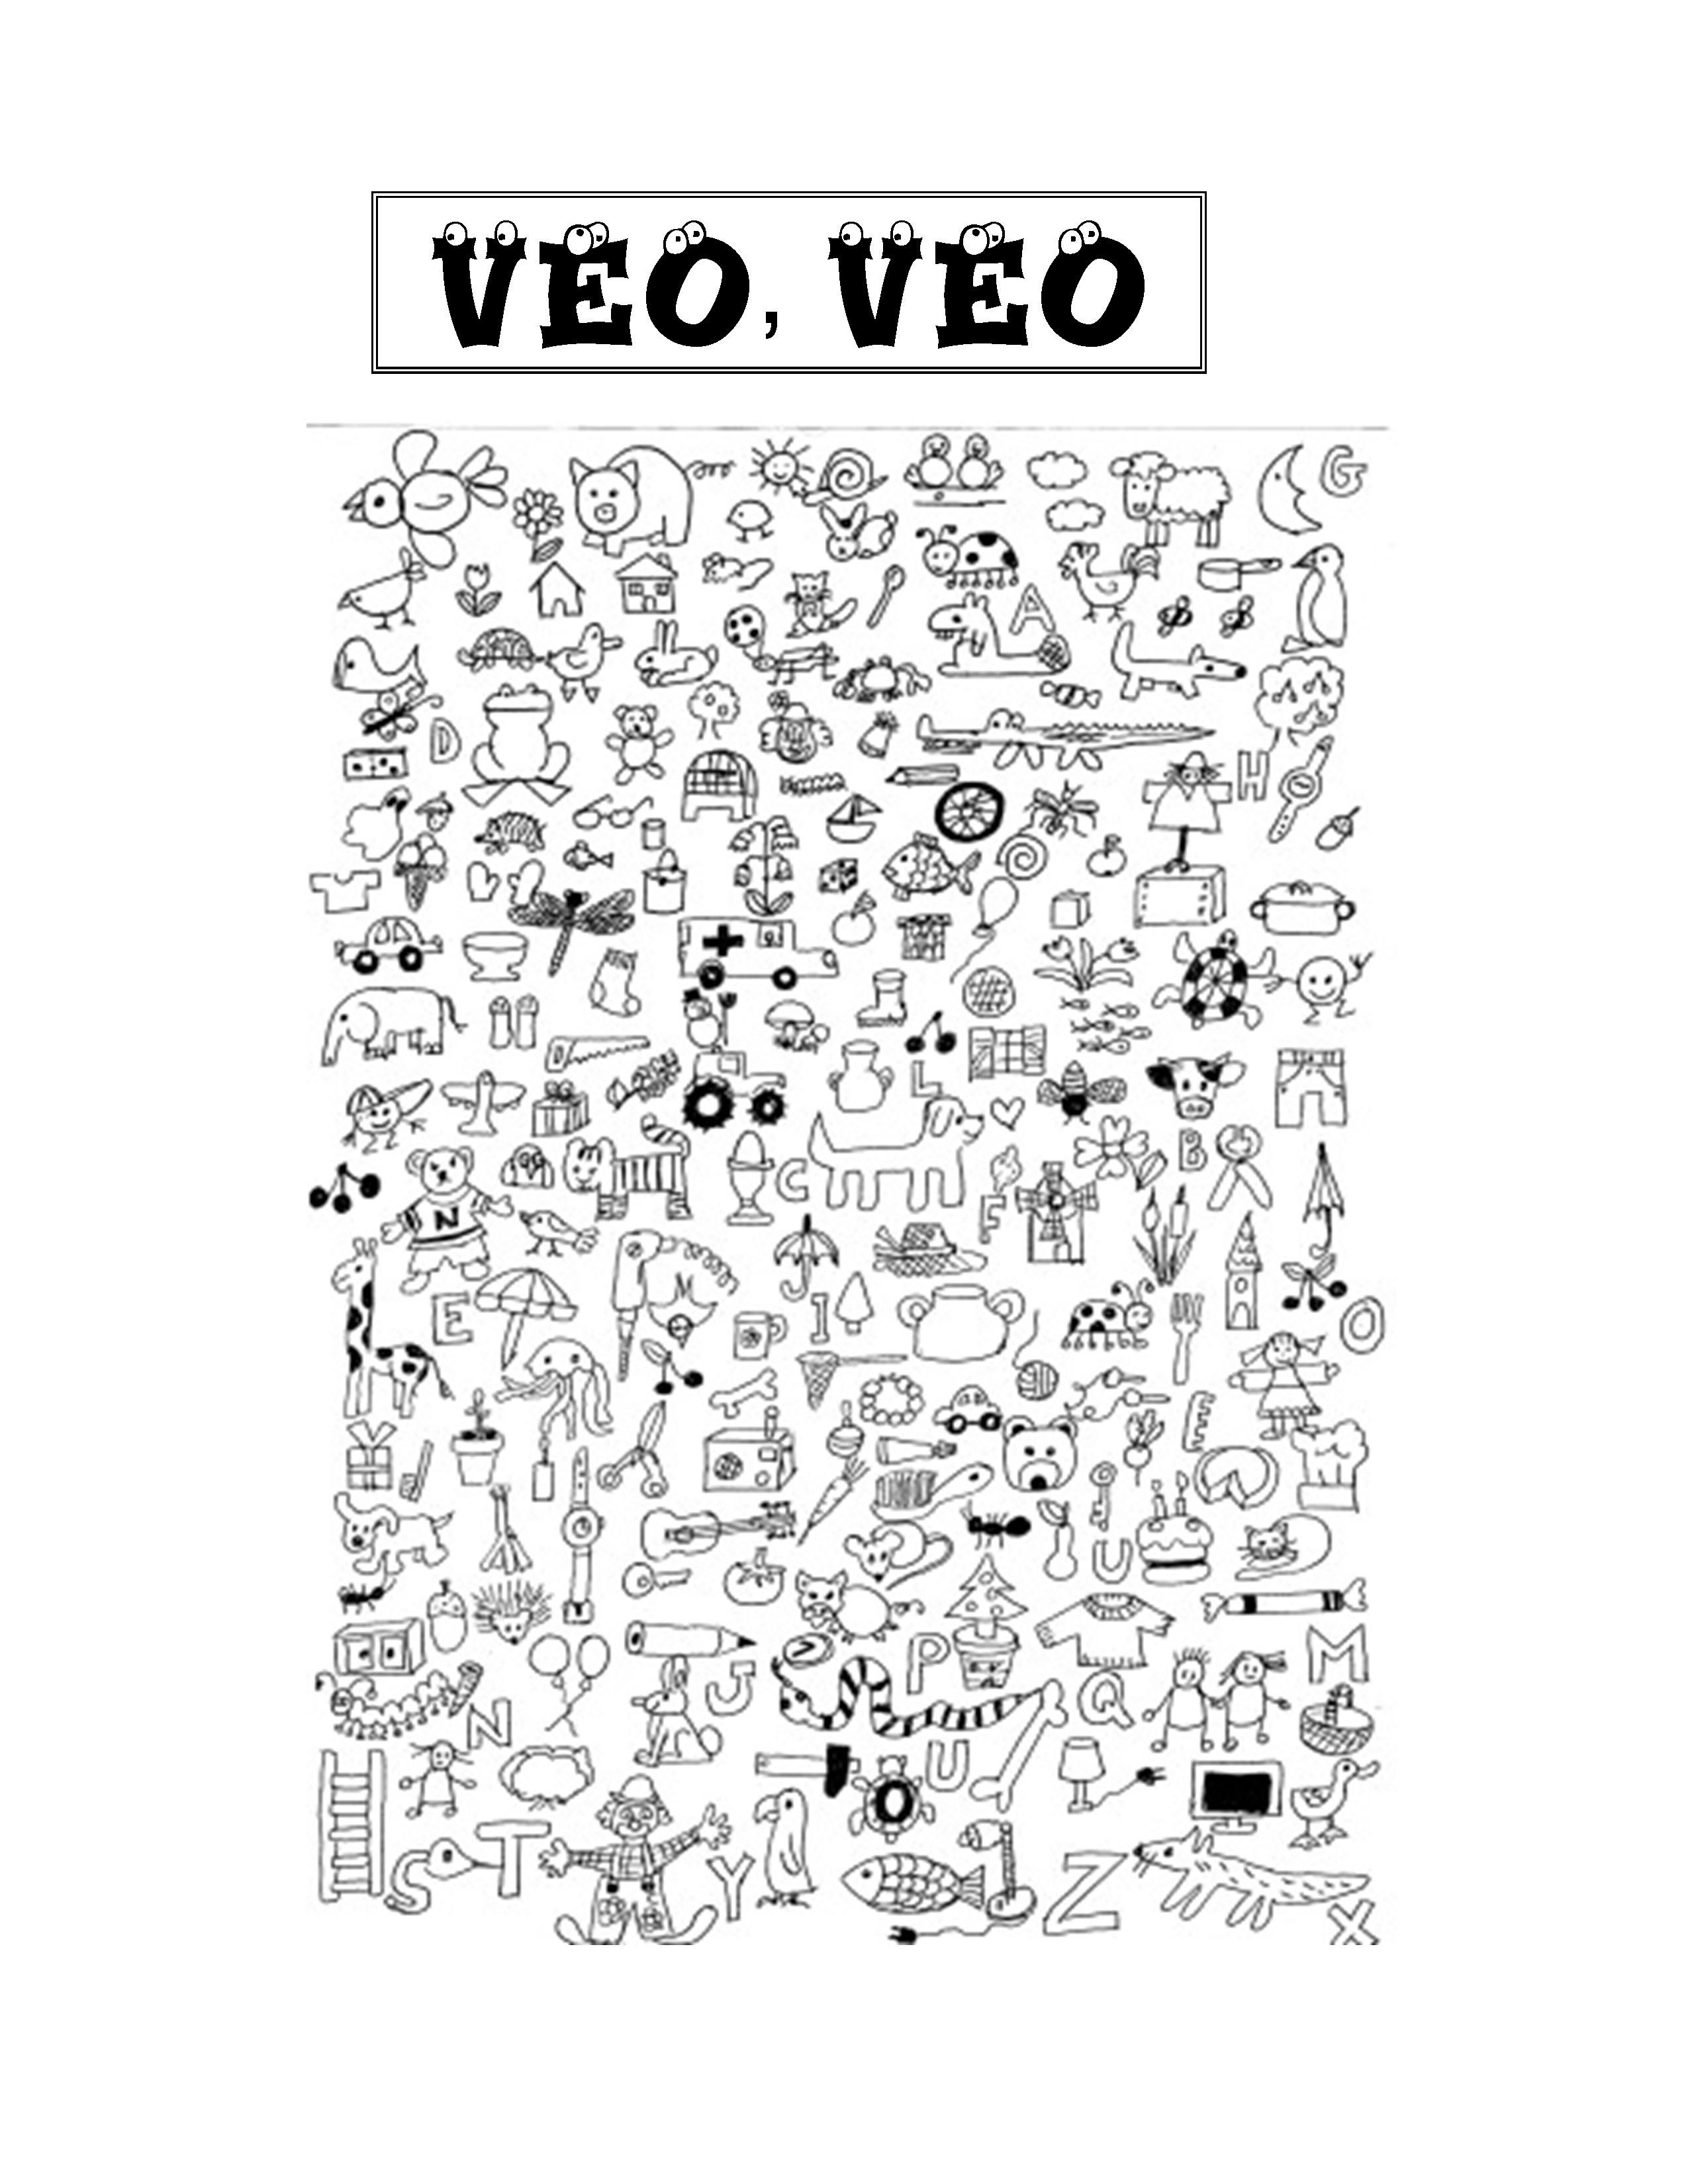 I Spy Game Veo Veo With Images